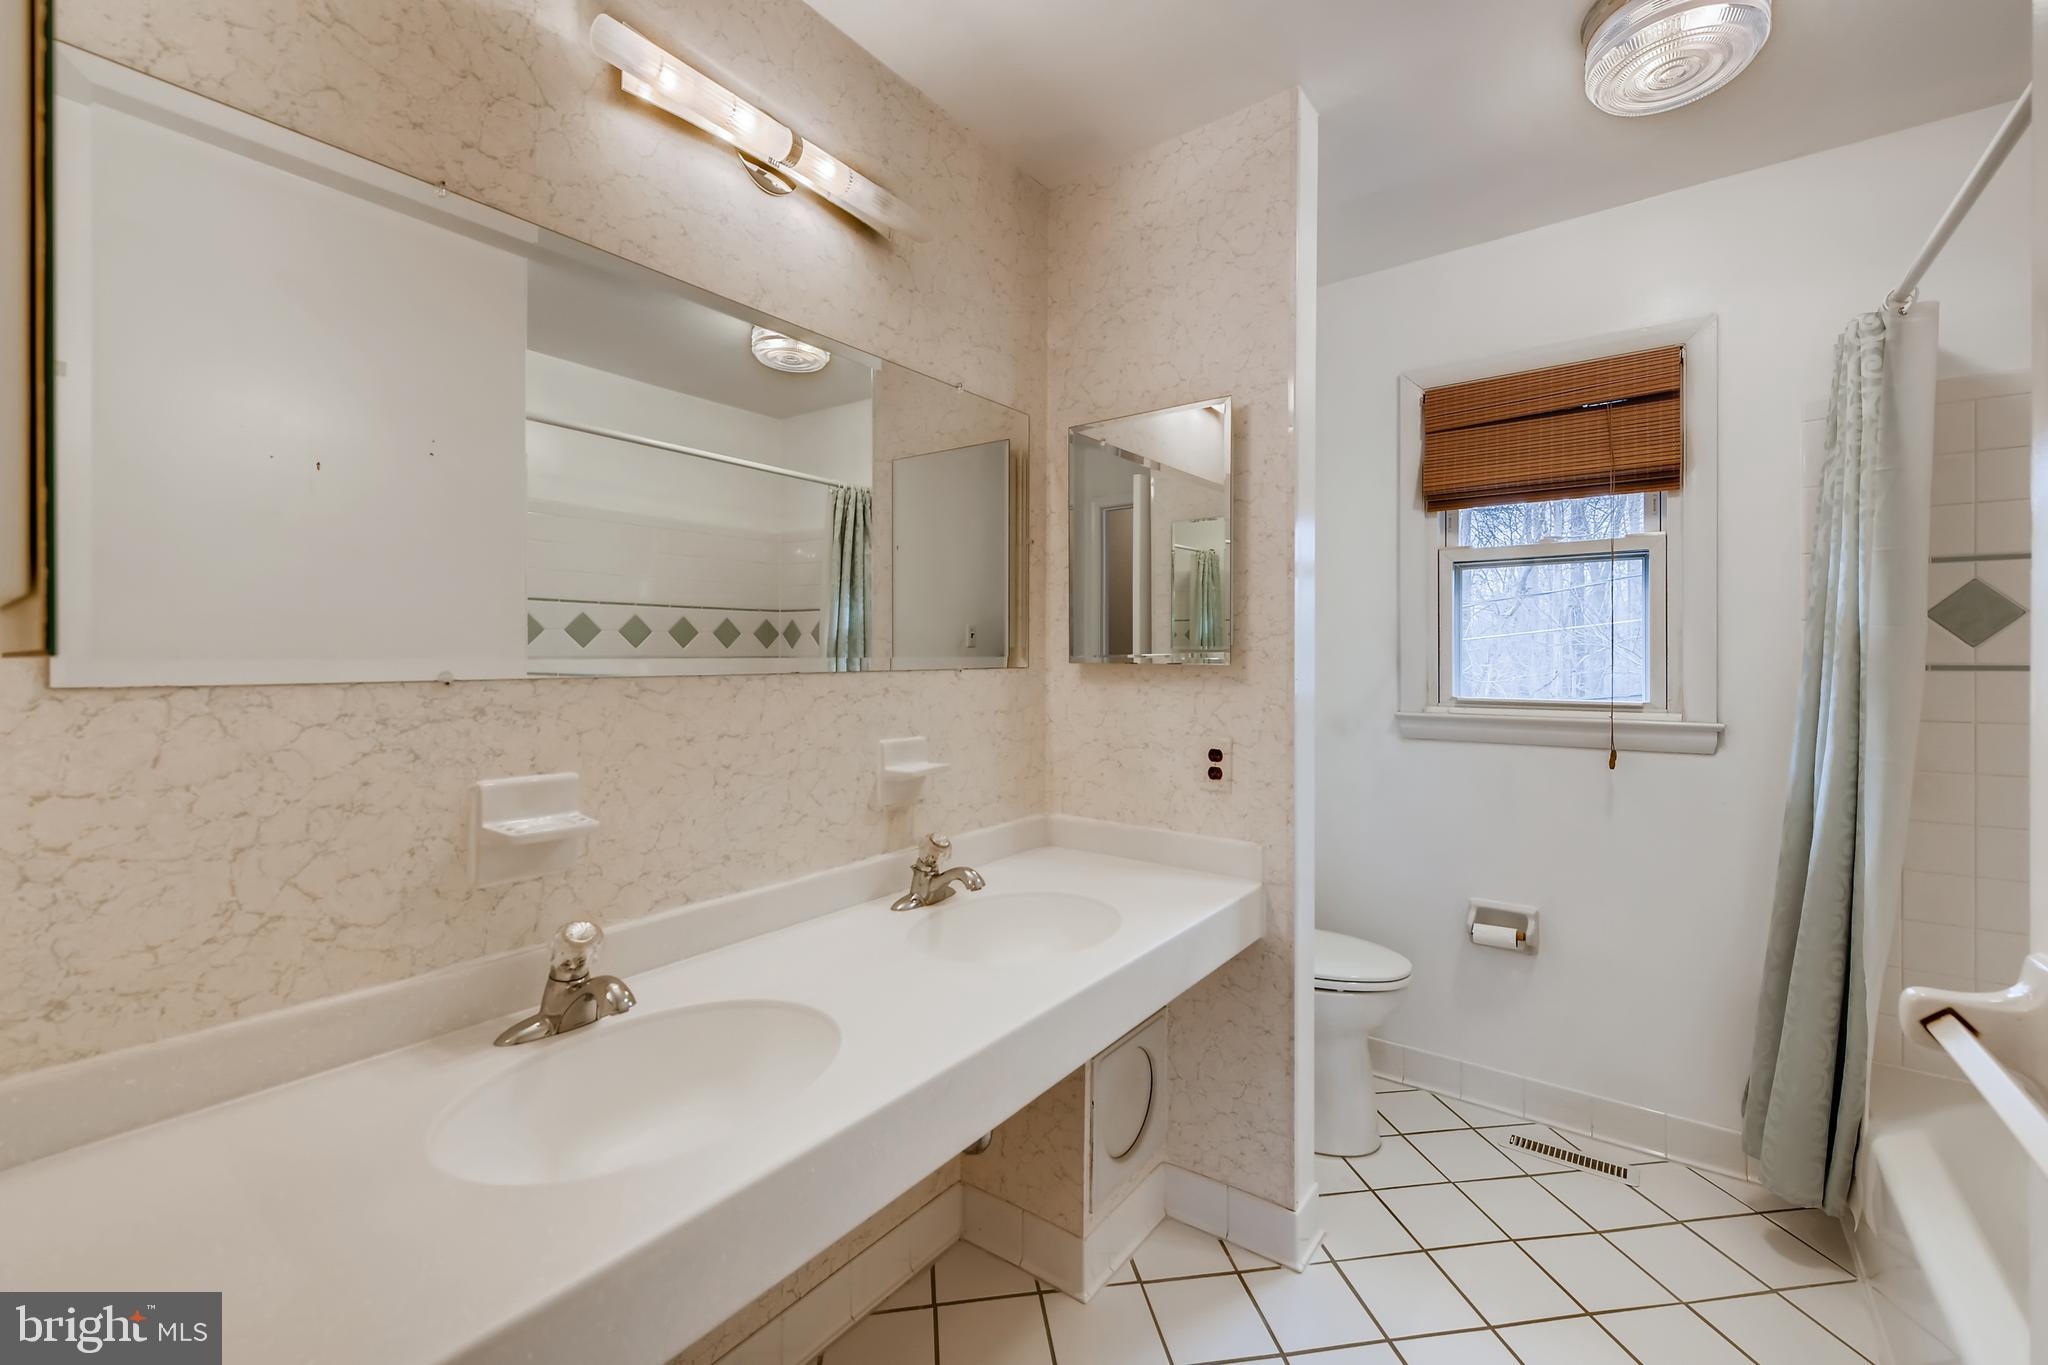 9 LAKE FOREST COURT, Nottingham, Maryland 21236, 4 Bedrooms Bedrooms, ,2 BathroomsBathrooms,Single Family,For Sale,9 LAKE FOREST COURT,MDBC522574